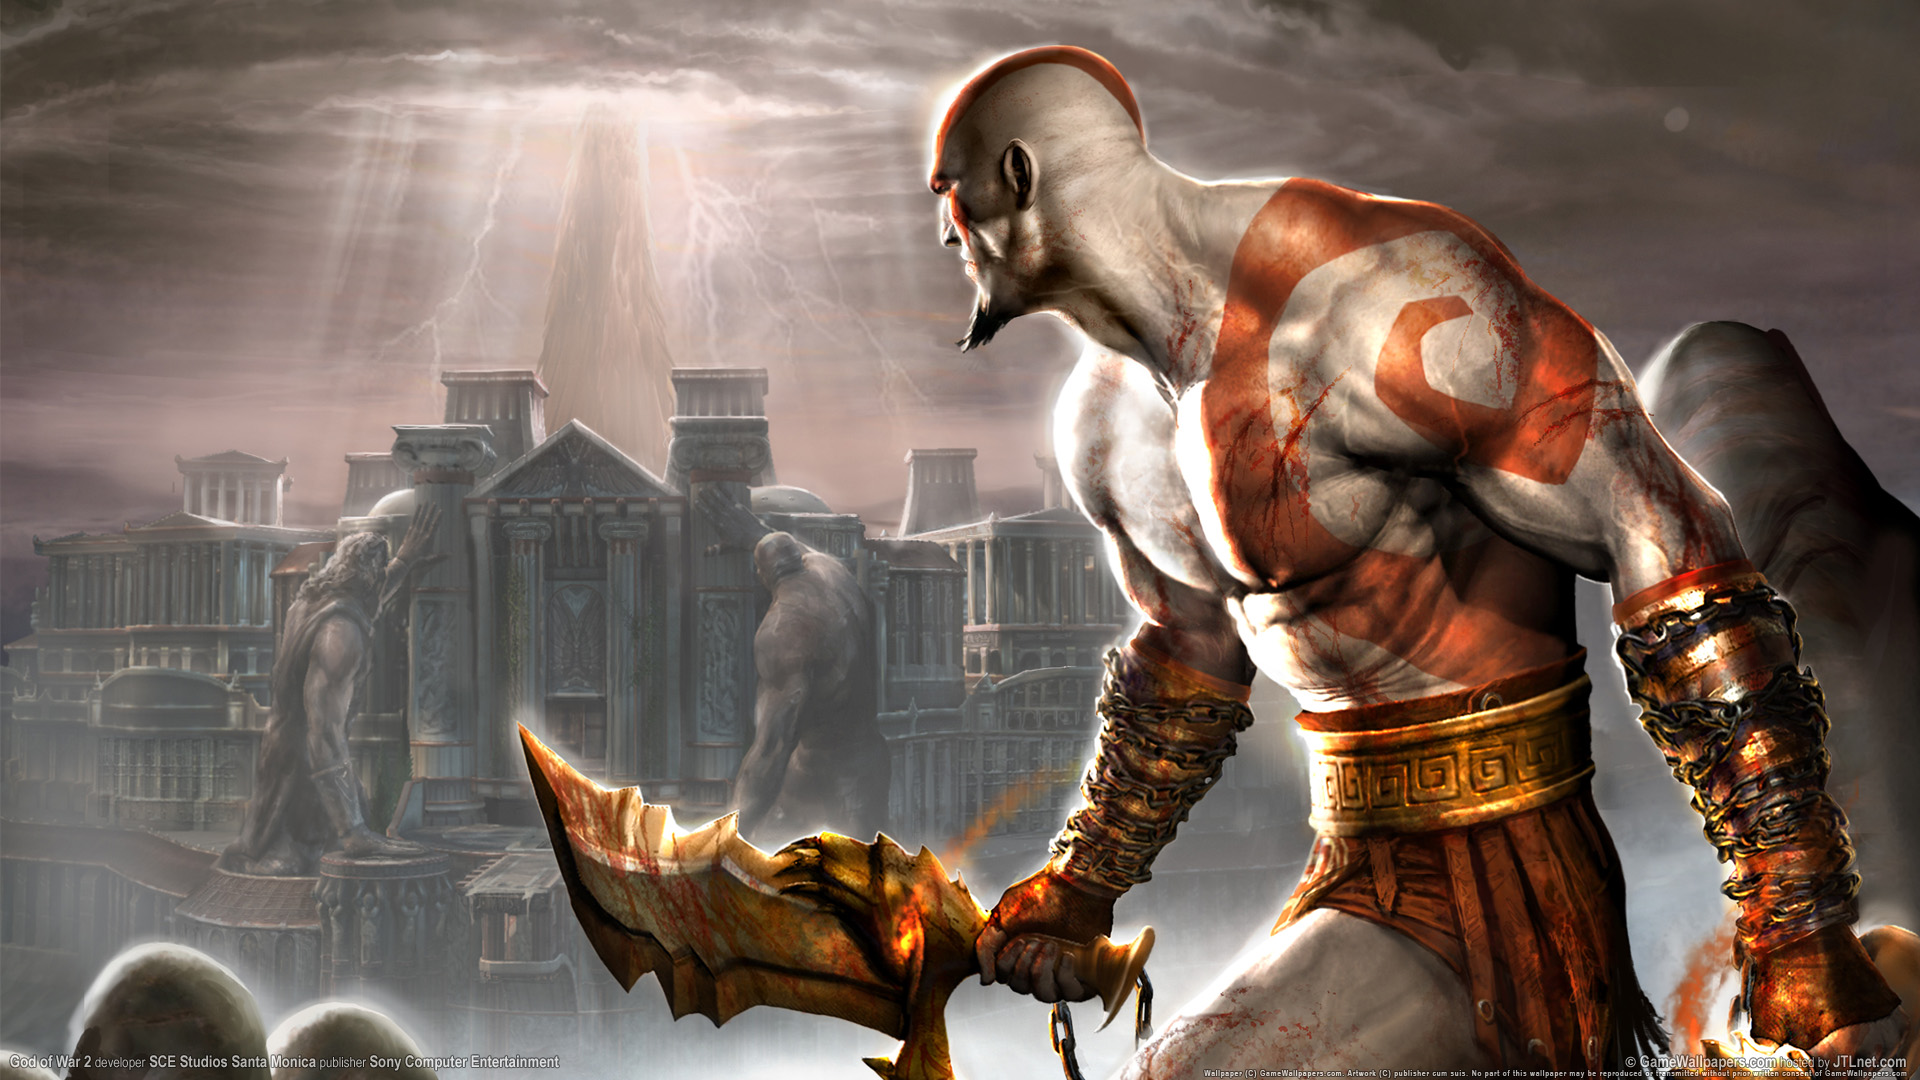 God Of War 2 Ps2 Game Hd 19201080 140351 HD Wallpaper Res 1920x1080